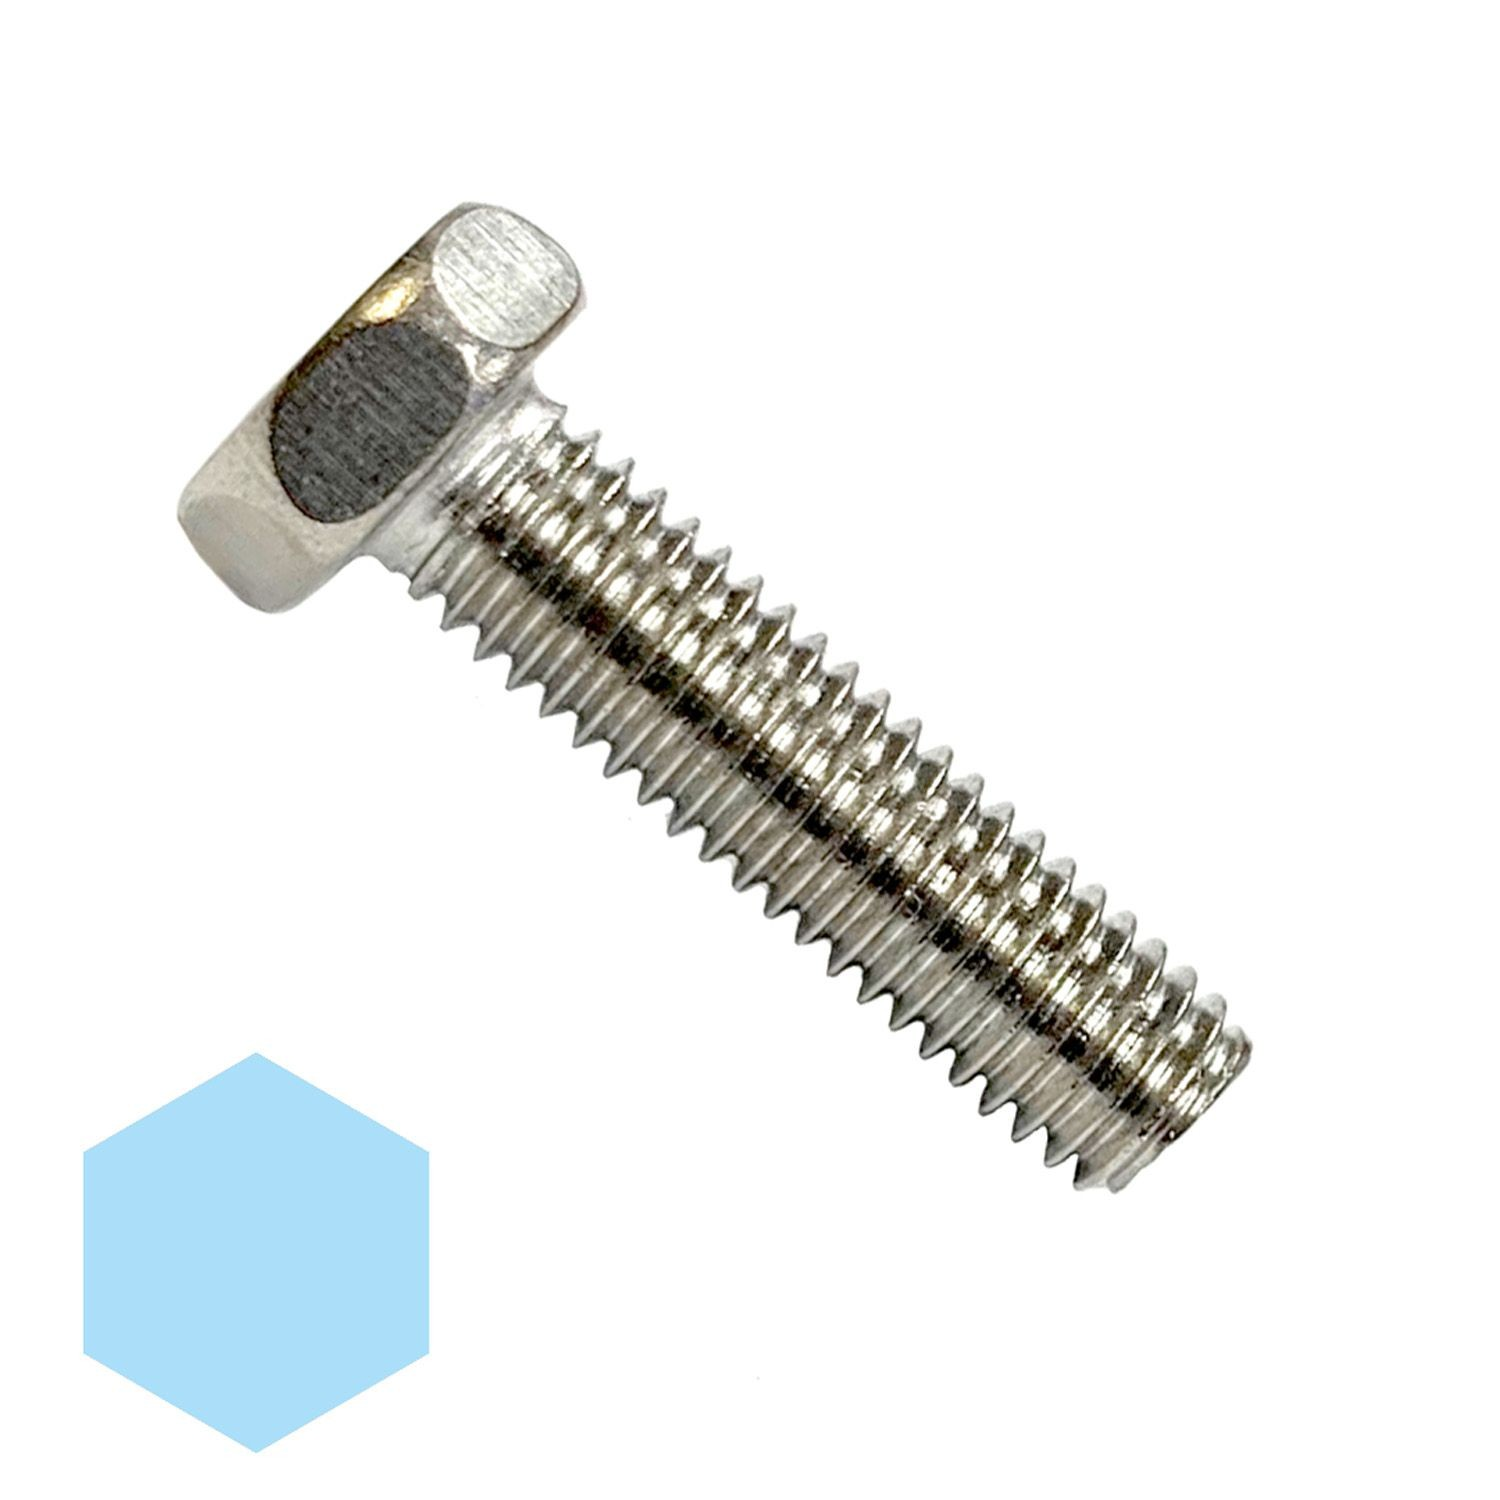 "#10-24 x 2"" Stainless Steel Hex Head Machine Screw 18-8"